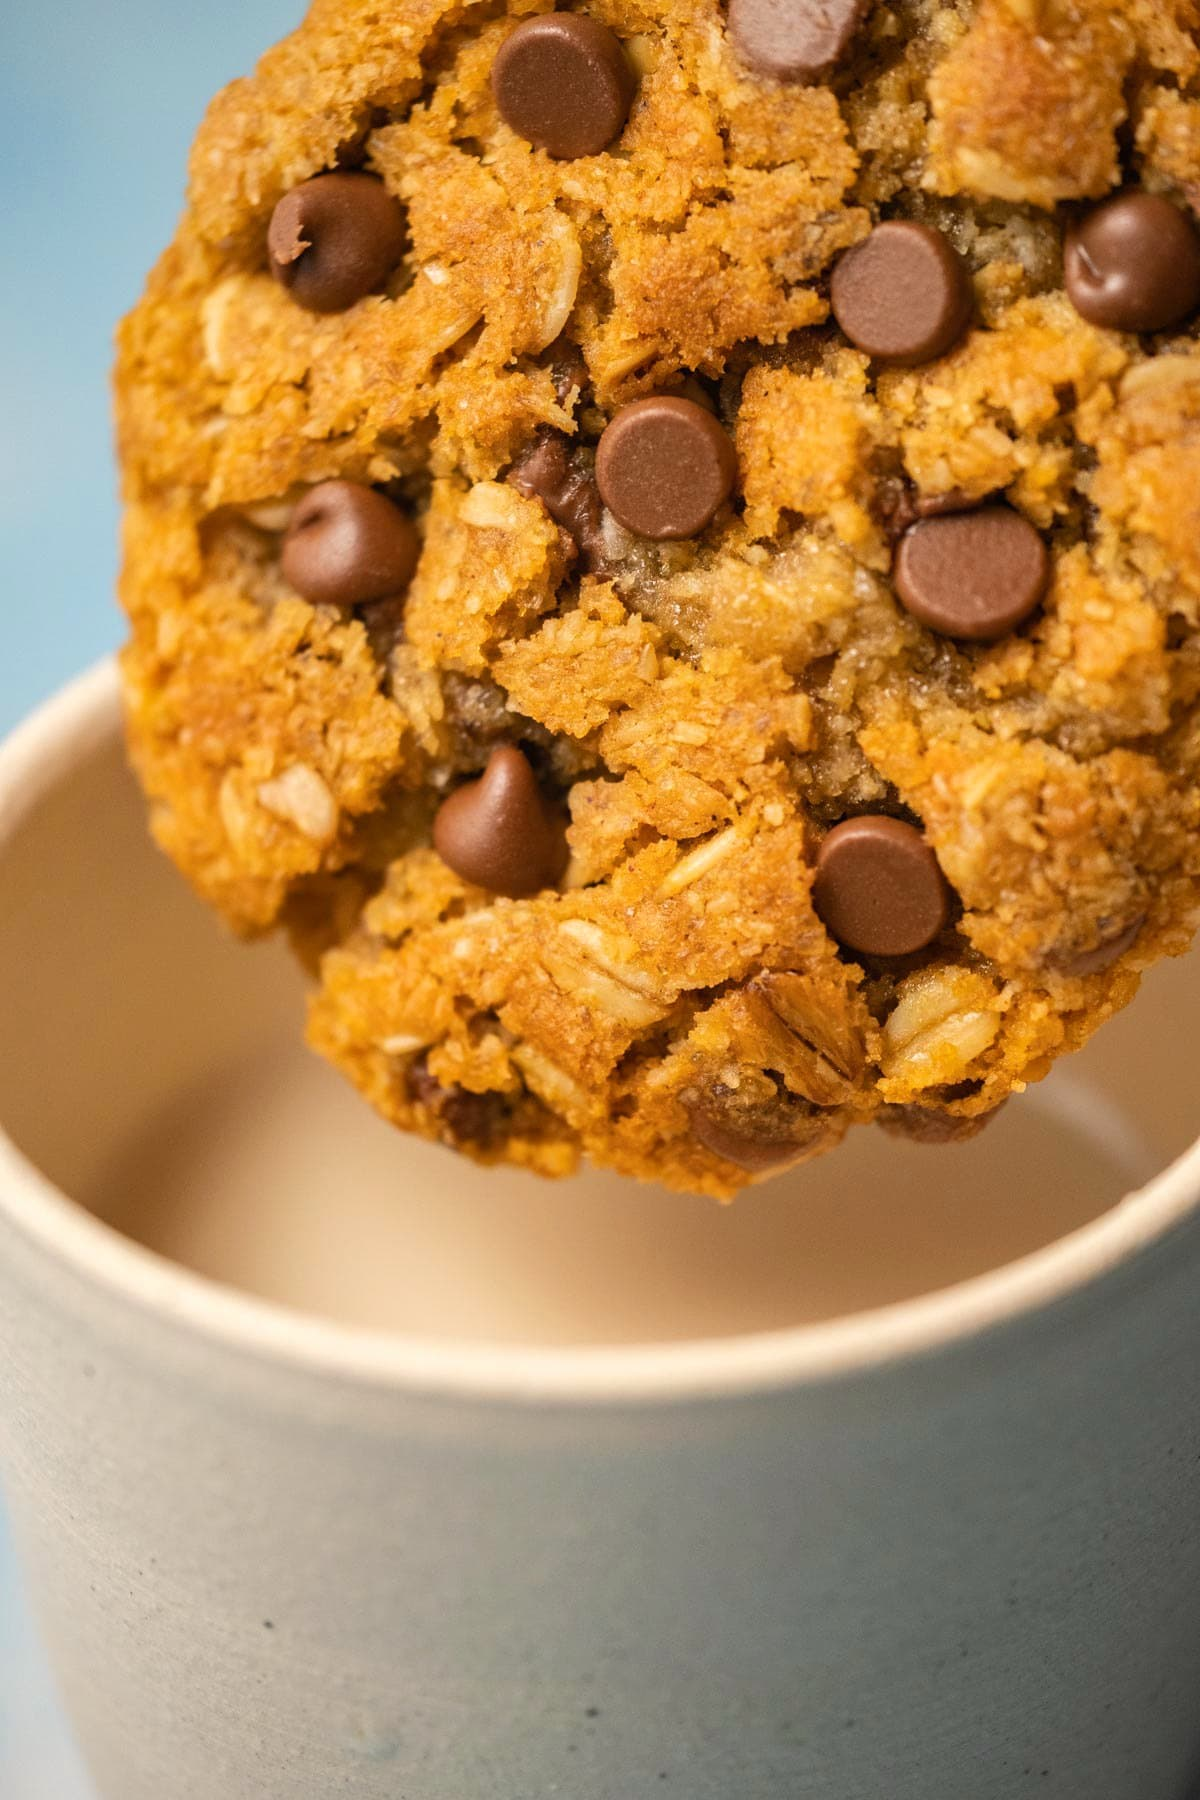 Oatmeal chocolate chip cookie about to dip into a cup of milk.